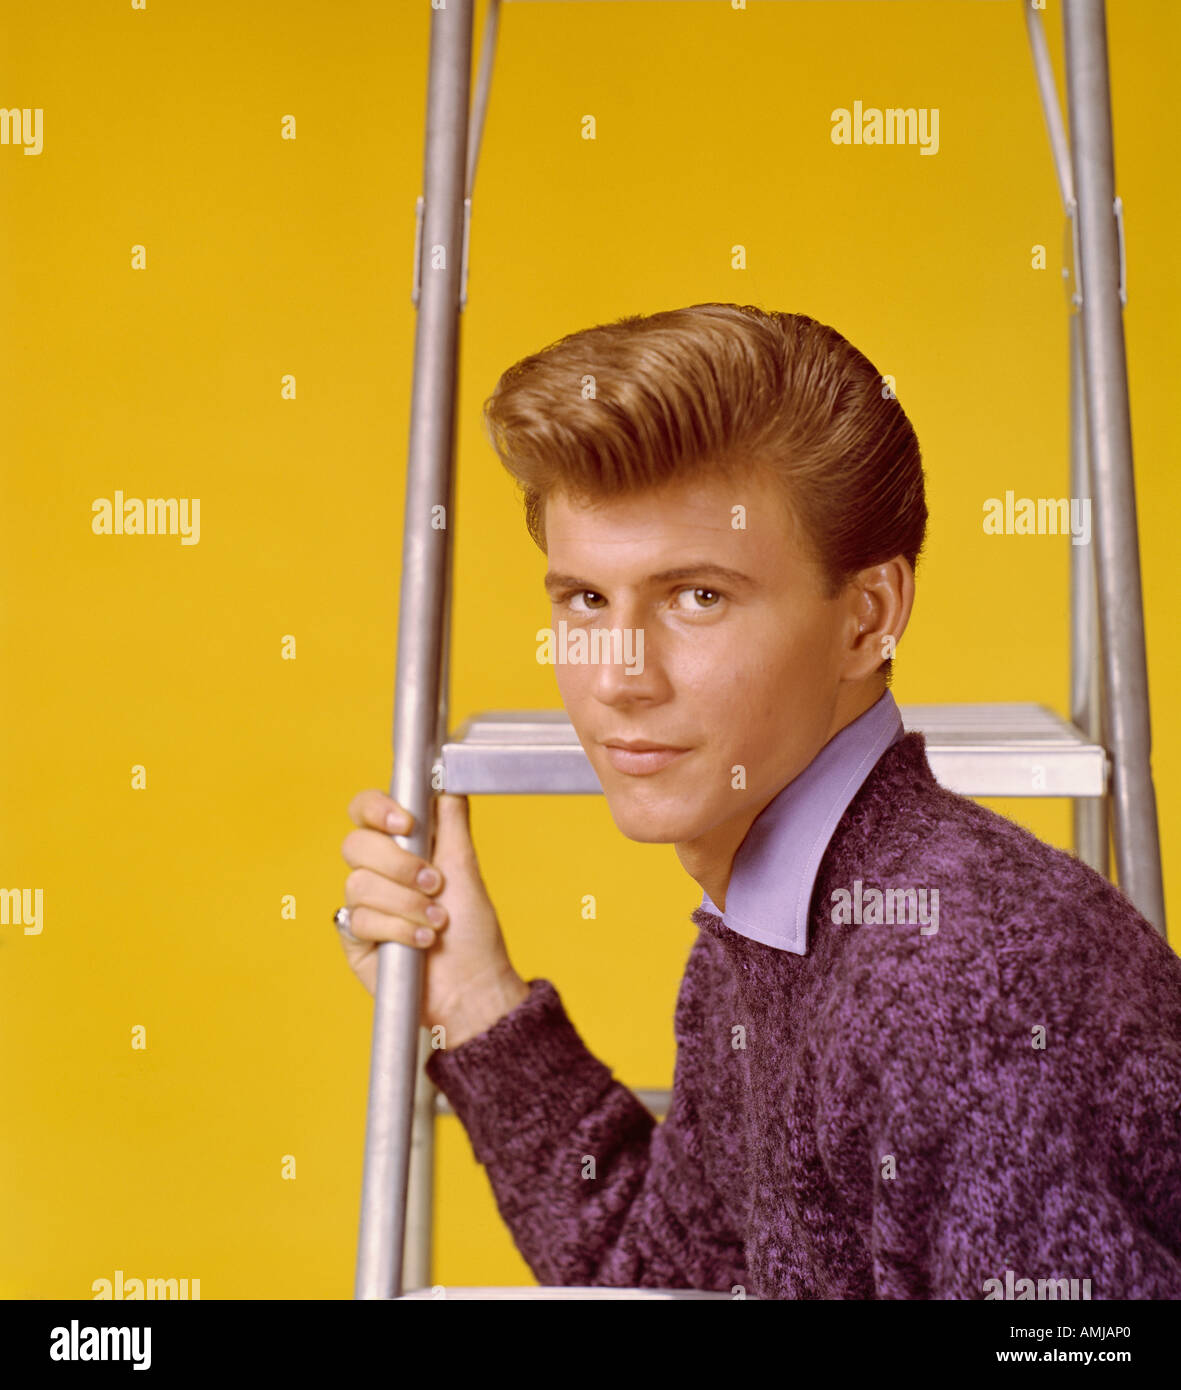 Bobby Rydell in publicity portrait 1959 61 - Stock Image